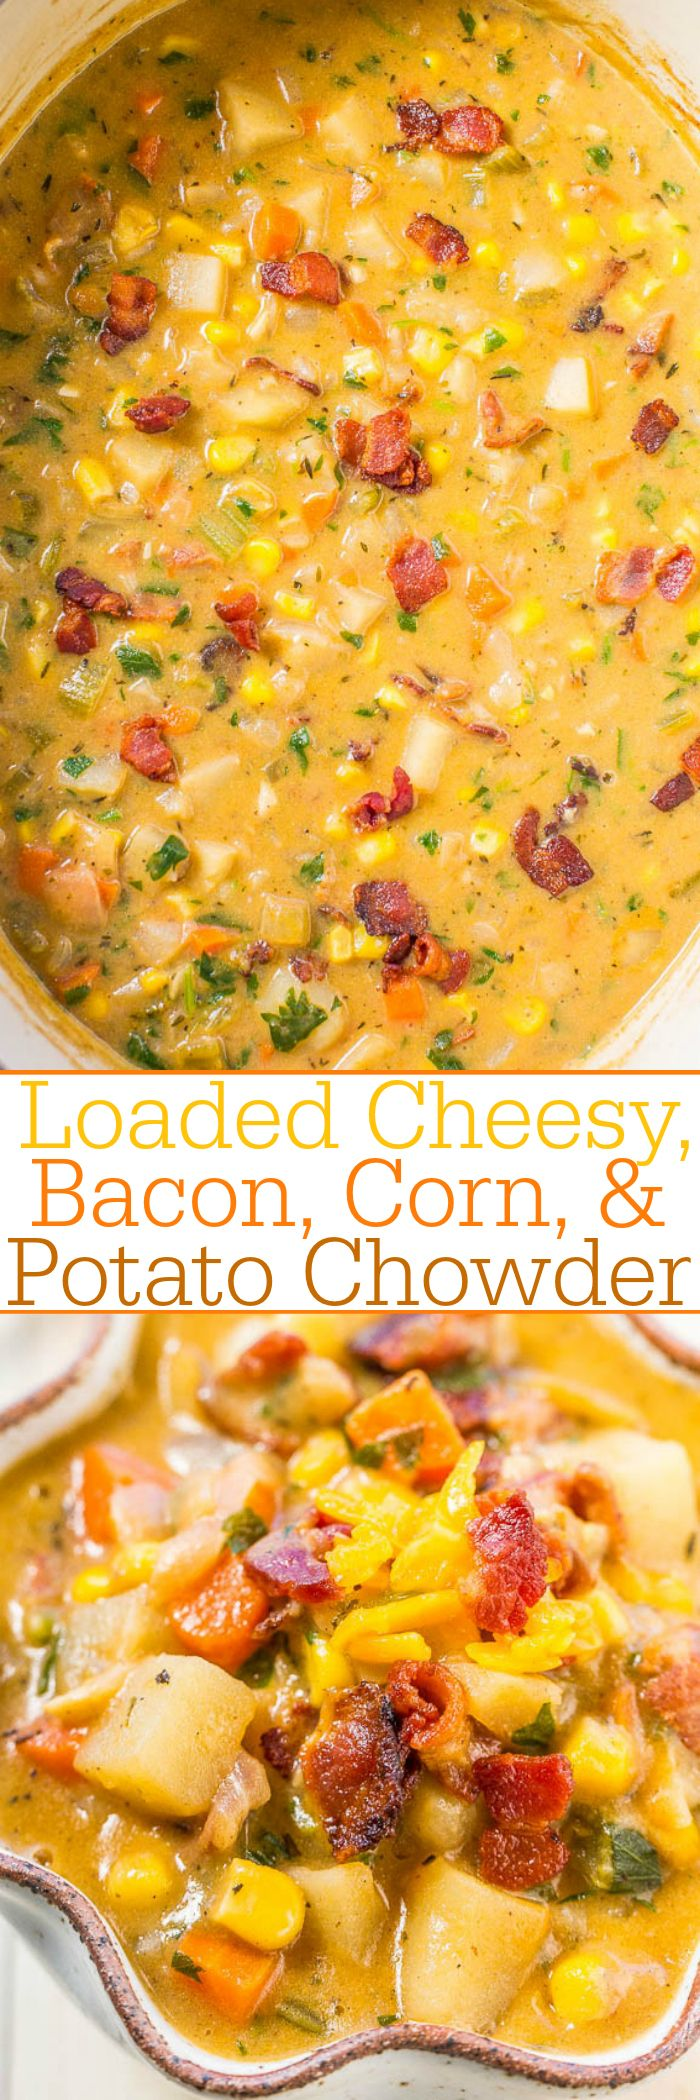 Loaded Cheesy, Bacon, Corn, and Potato Chowder - Loaded with all the good stuff!! Bacon, cheese, and more! Hearty, comforting, fast, and easy! A dinnertime favorite that's perfect for busy nights!! (Corn Soup Recipes)